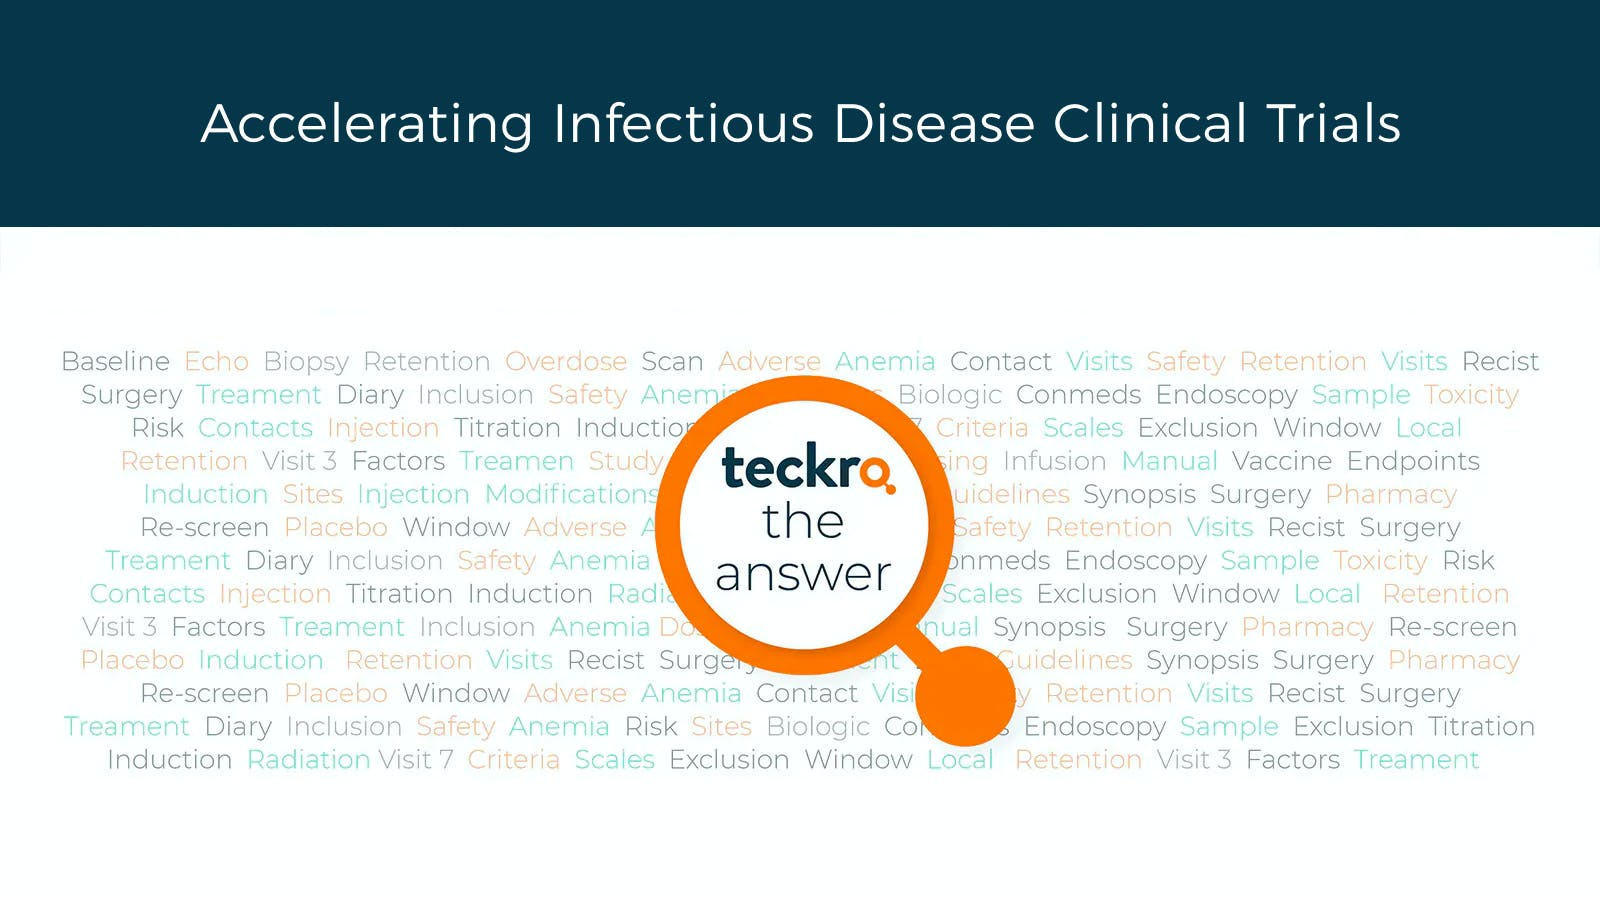 Accelerating Infectious Disease Clinical Trials